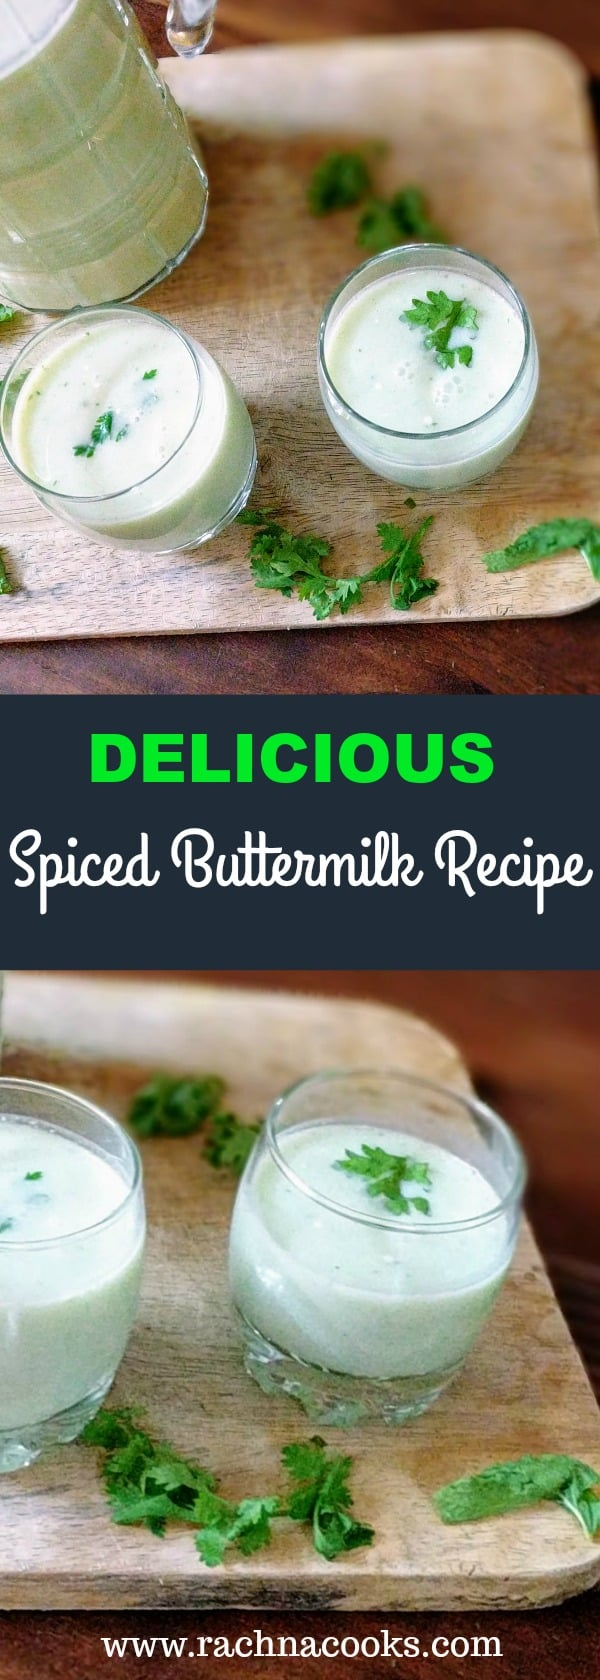 spiced buttermilk recipe